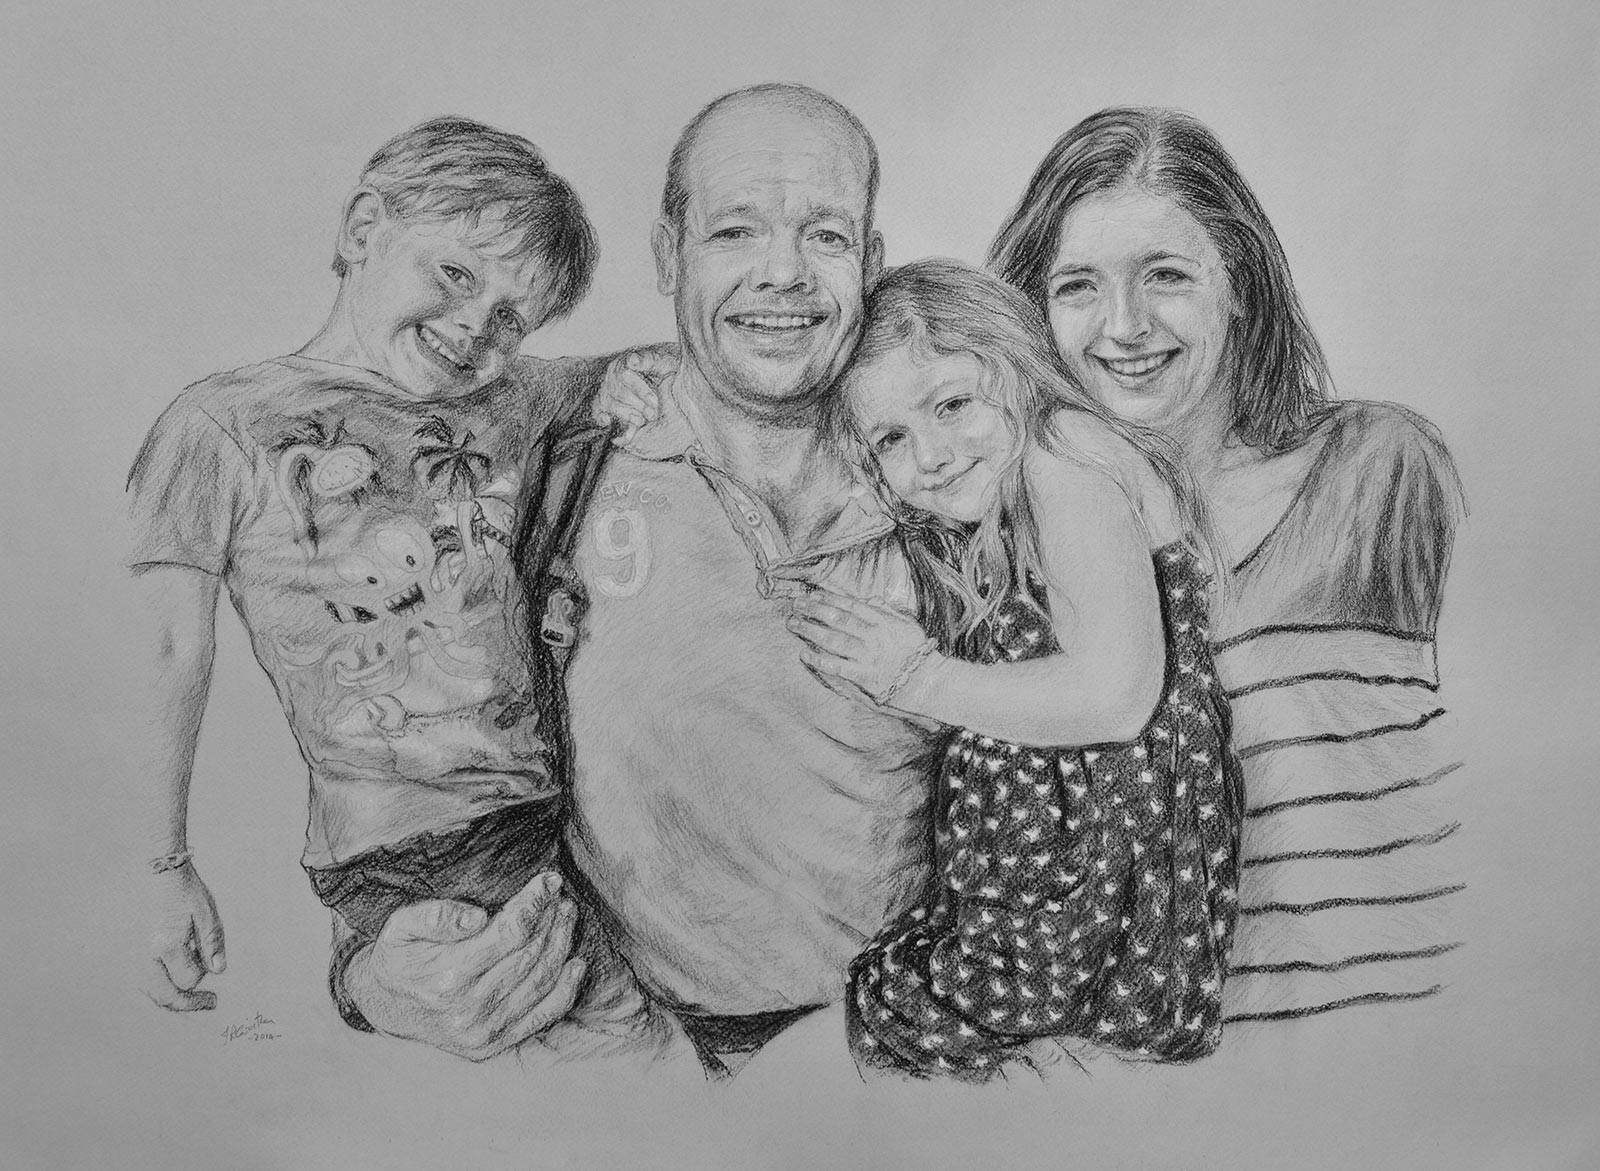 Family portrait, carbon pencil on paper